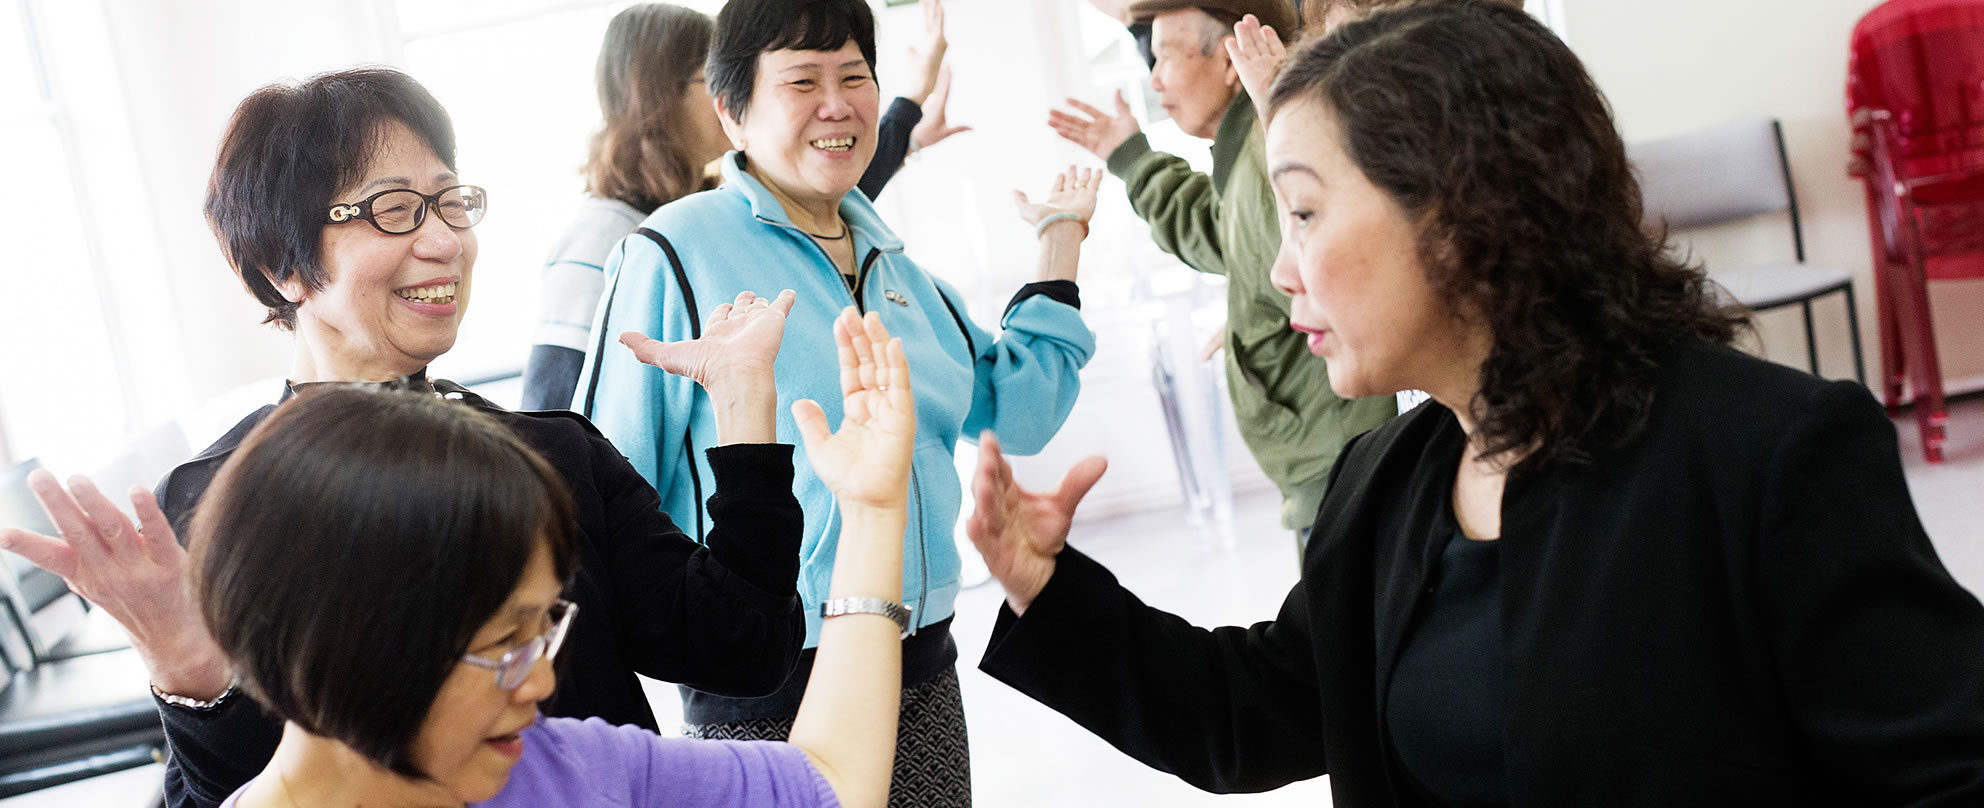 Ballrroom dancing class run by the Australian Vietnamese Women's Gambling Counselling Program